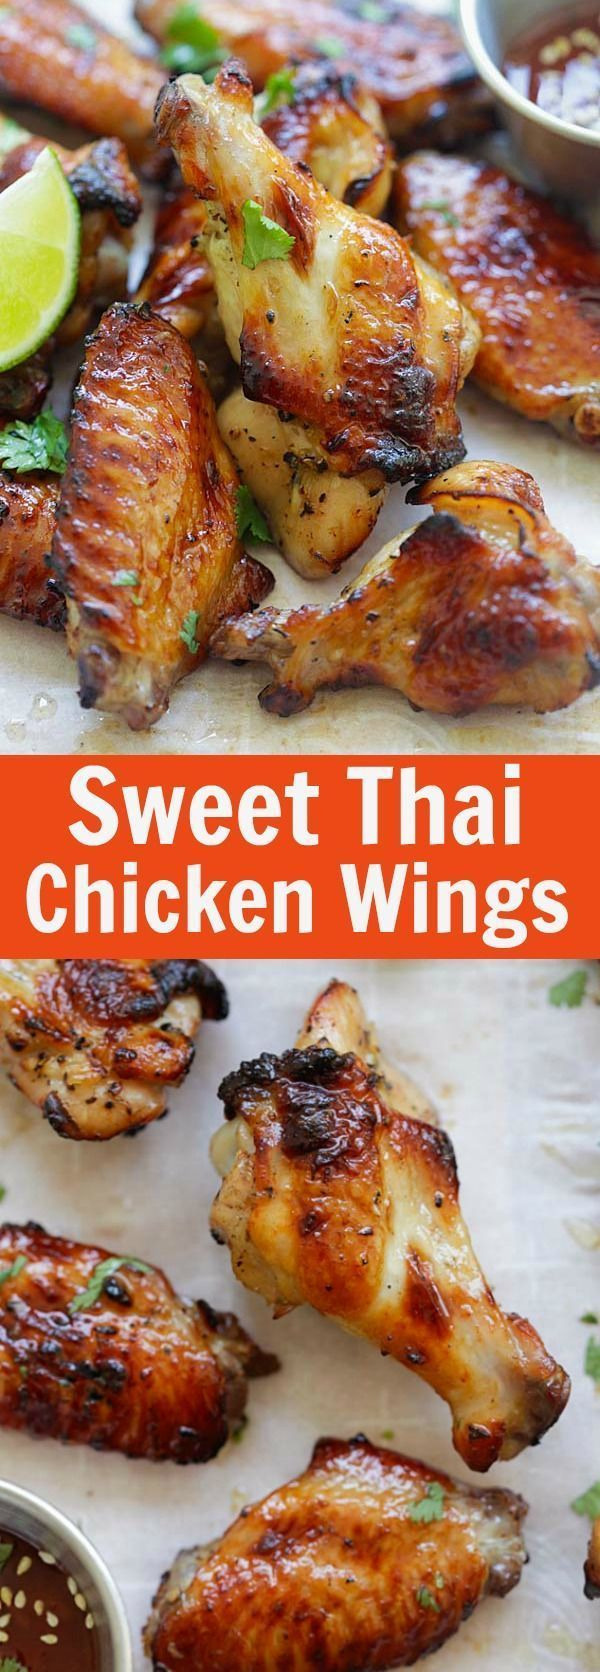 Sweet Thai Chicken Wings - perfectly grilled chicken wings with sweet Thai seasoning. Crazy delicious wings you can't stop eating | http://rasamalaysia.com